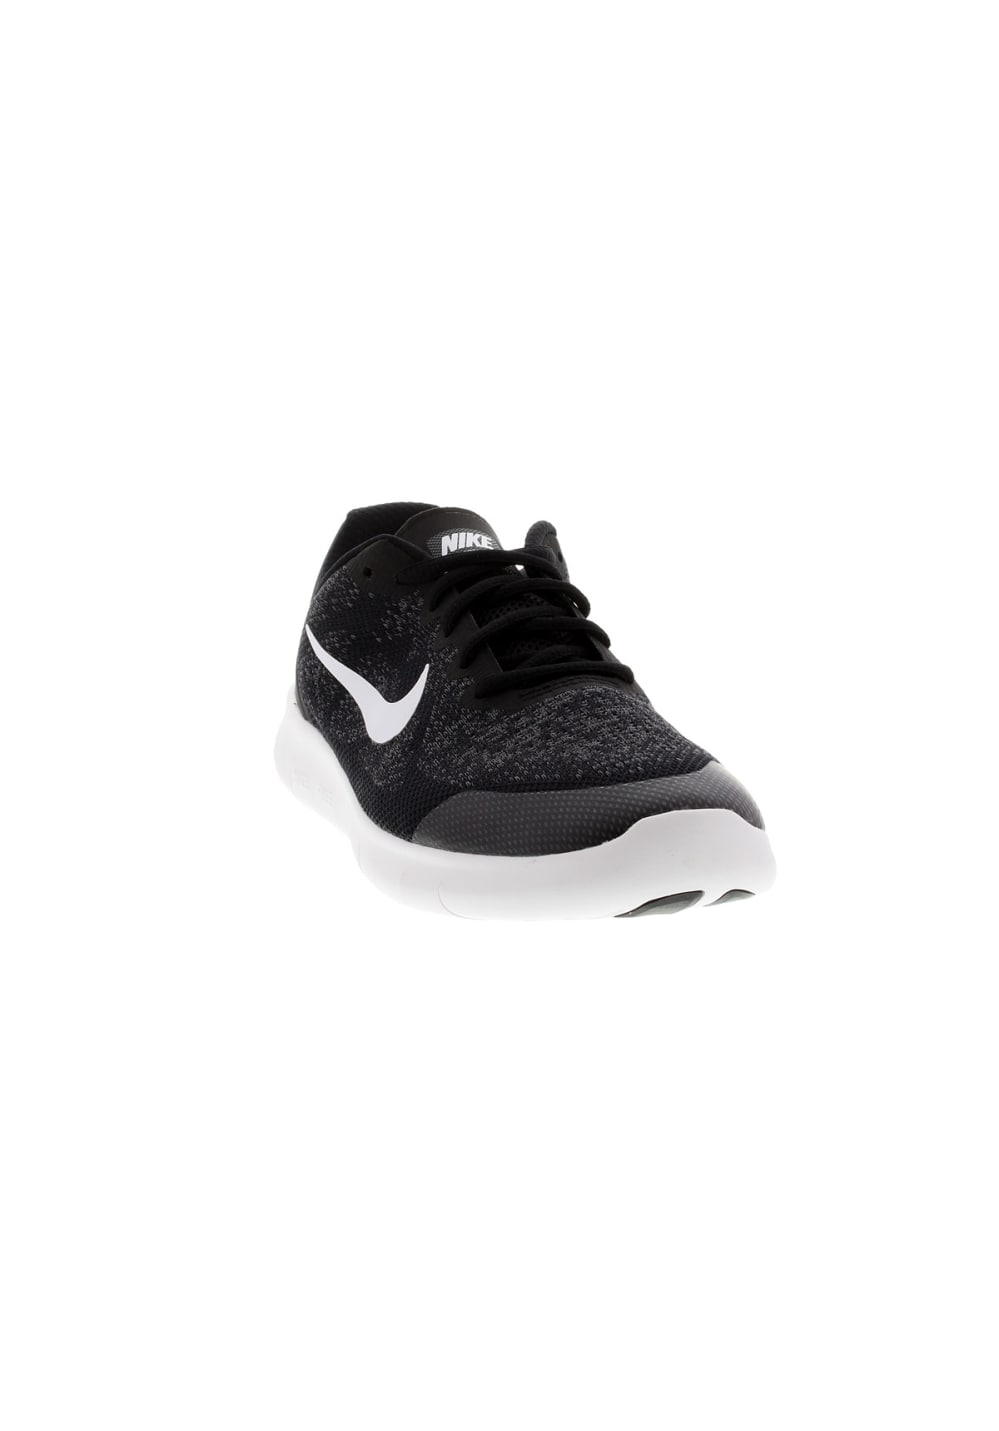 a299001febf1 Next. -60%. This product is currently out of stock. Nike. Boys Free RN 2 GS  ...